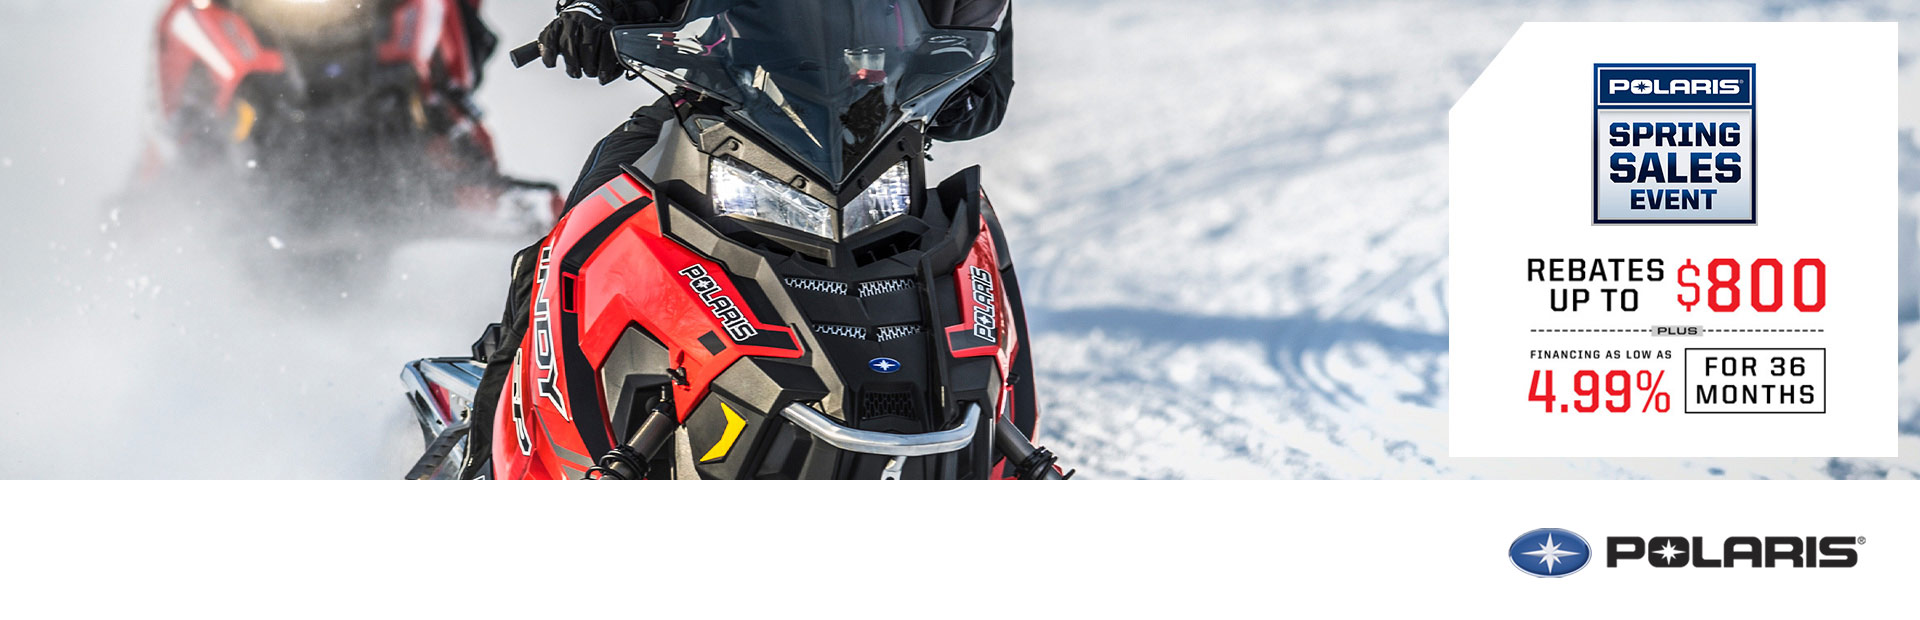 Polaris Industries: Spring Sales Event - Snow